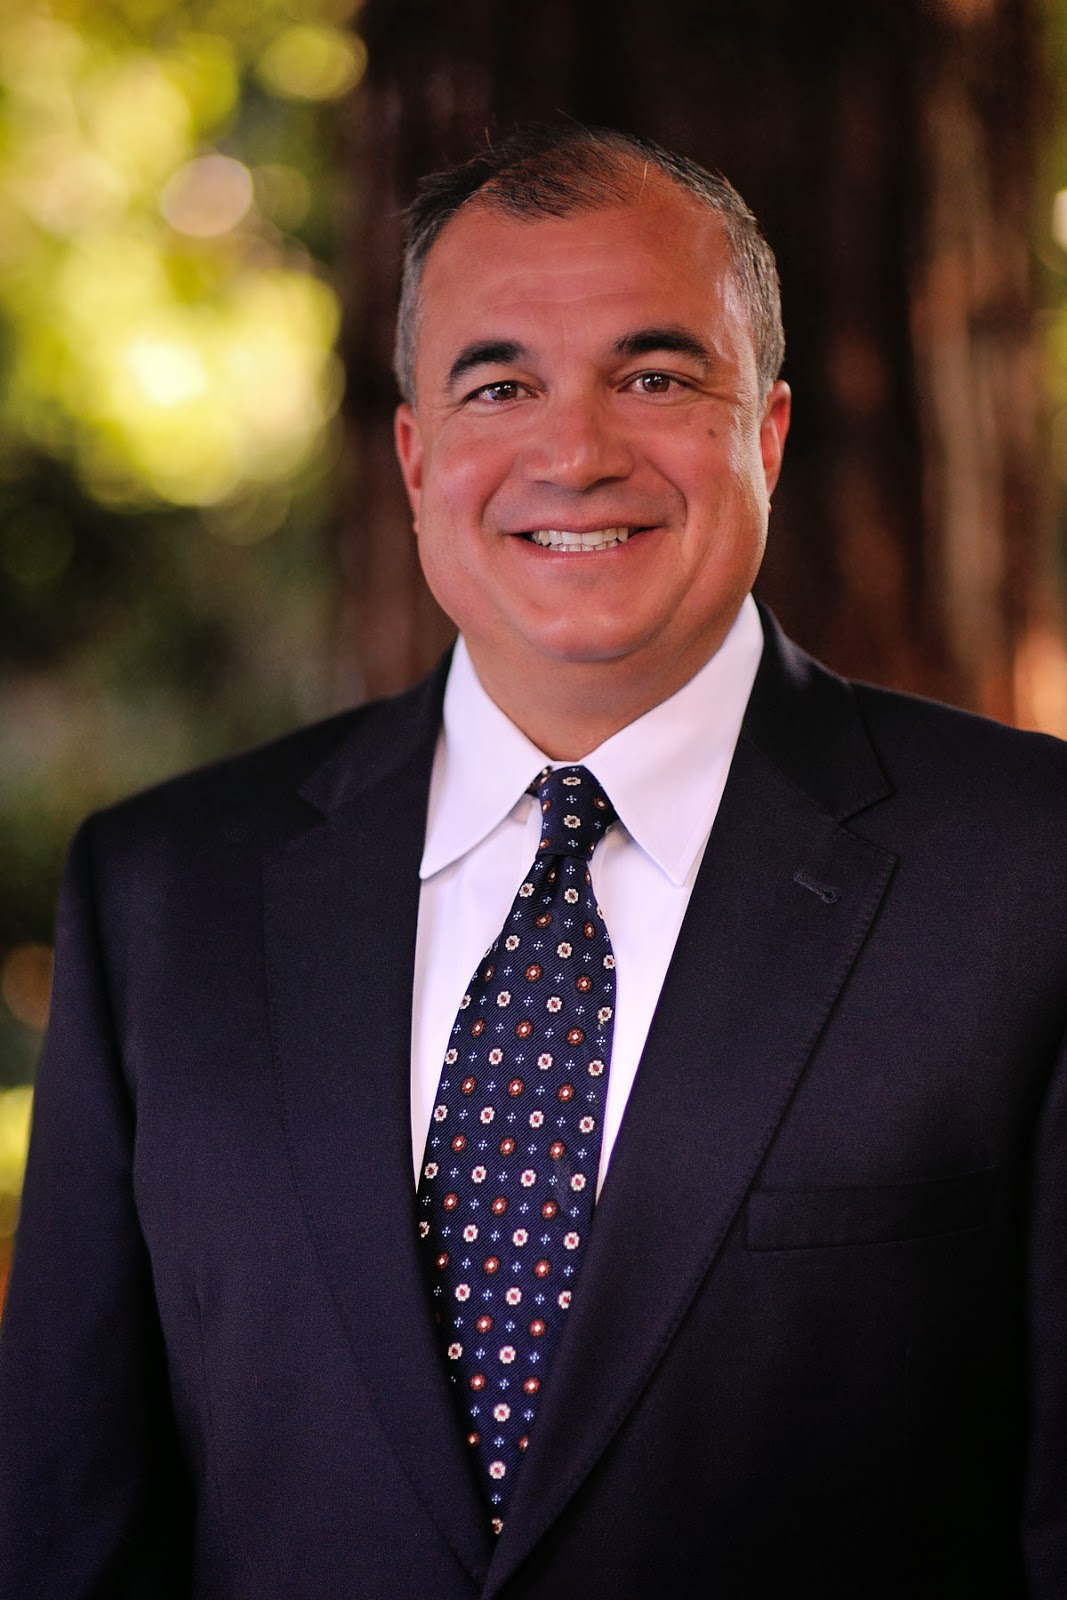 dan flores announces candidacy for supervisor eterritorial dispatch announced his candidacy for sutter county supervisor in district 2 flores is the president and founder of cambridge junior college a well respected